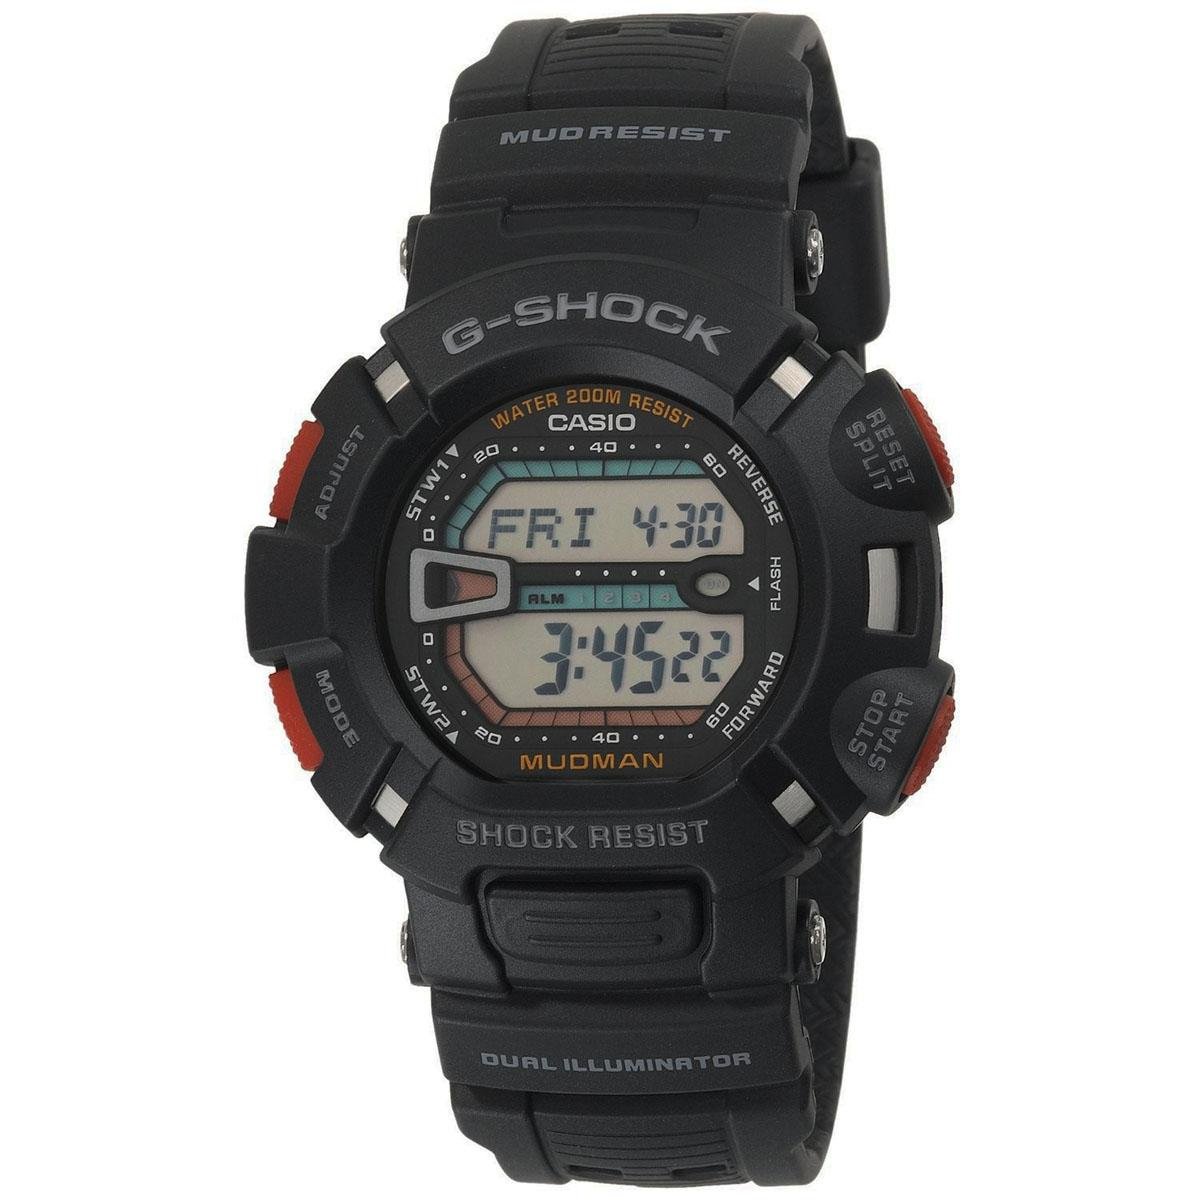 Casio Watch G Shock Professional Black Resin Case Resin Strap Mens G 9000 1V Shopping